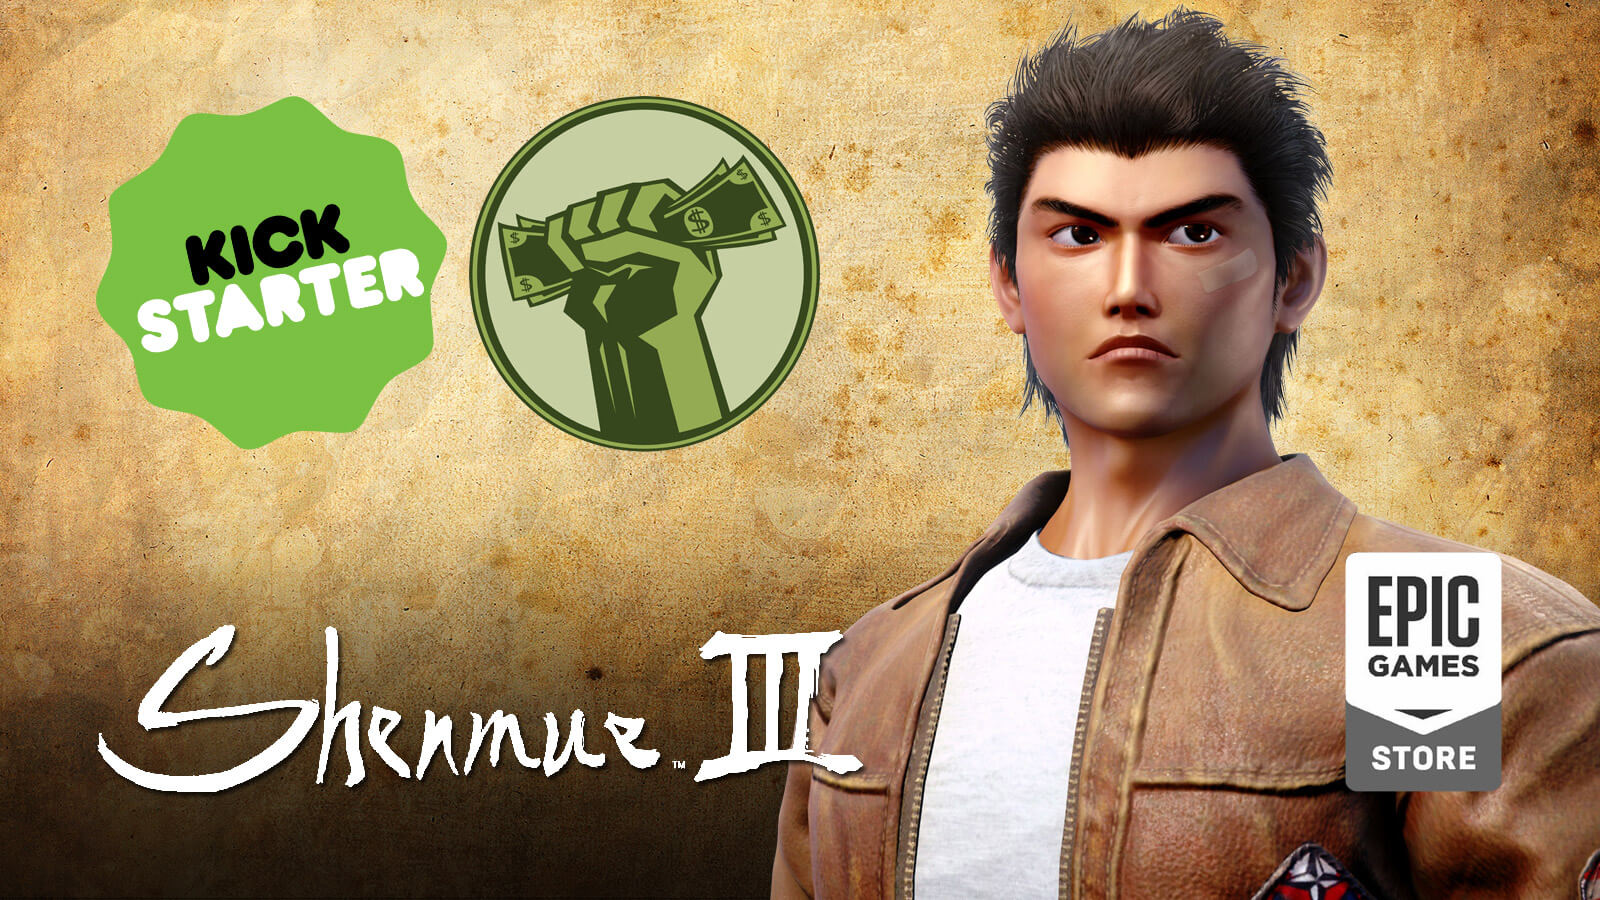 Shenmue-3-Backers-Getting-Refund-from-Epic-Store.jpg